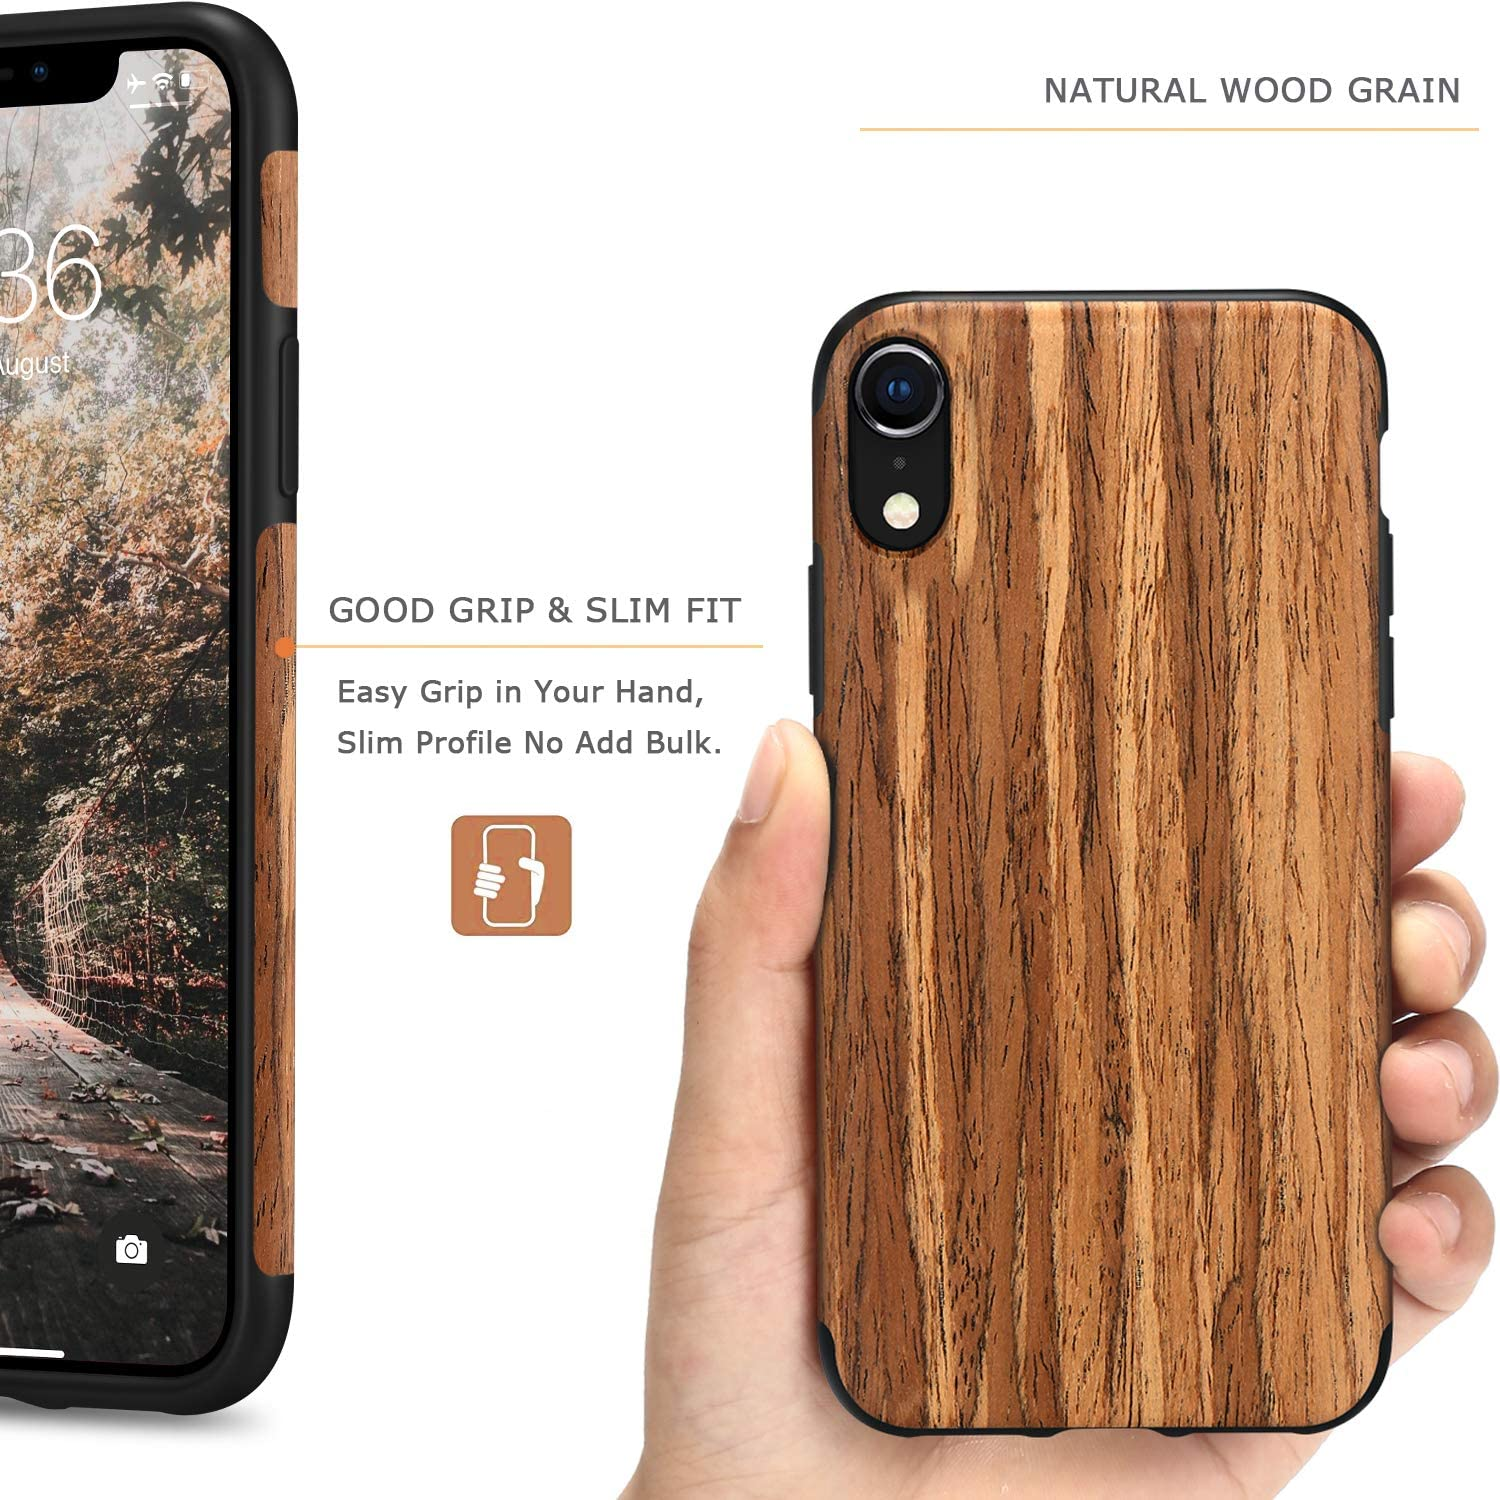 Sith Empire iPhone Case Star Wars Wooden iPhone xr 11 pro MAX case xxs 78 Plus Real Wood Case Laser Engraved Personalized iPhone Wood Case